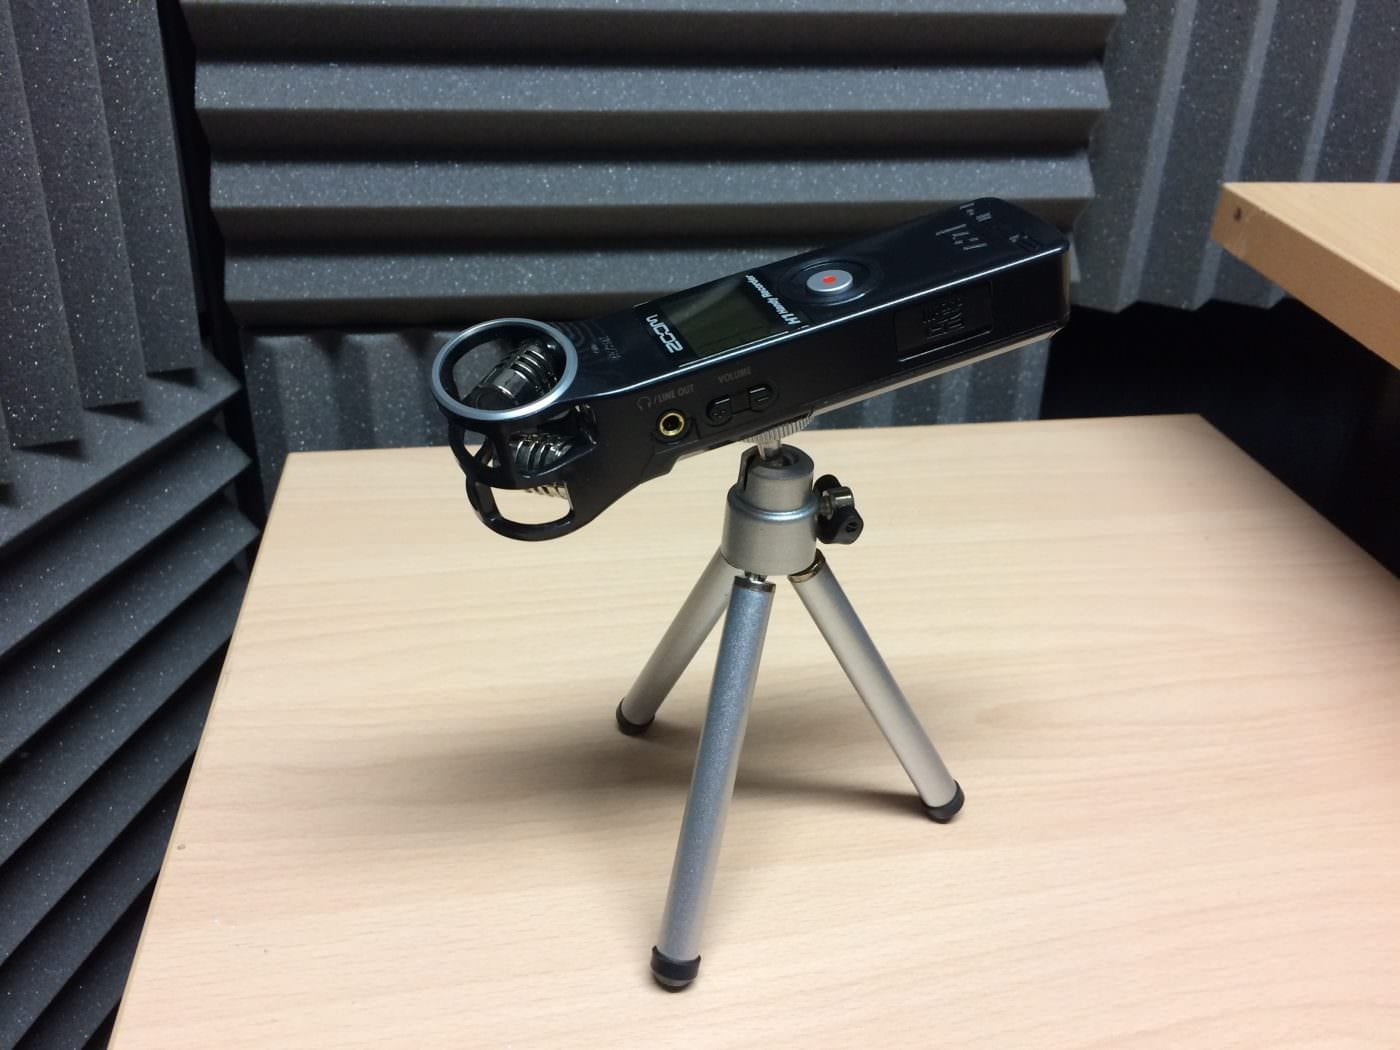 Zoom H1 Review: The Extra-Mobile Digital Recorder